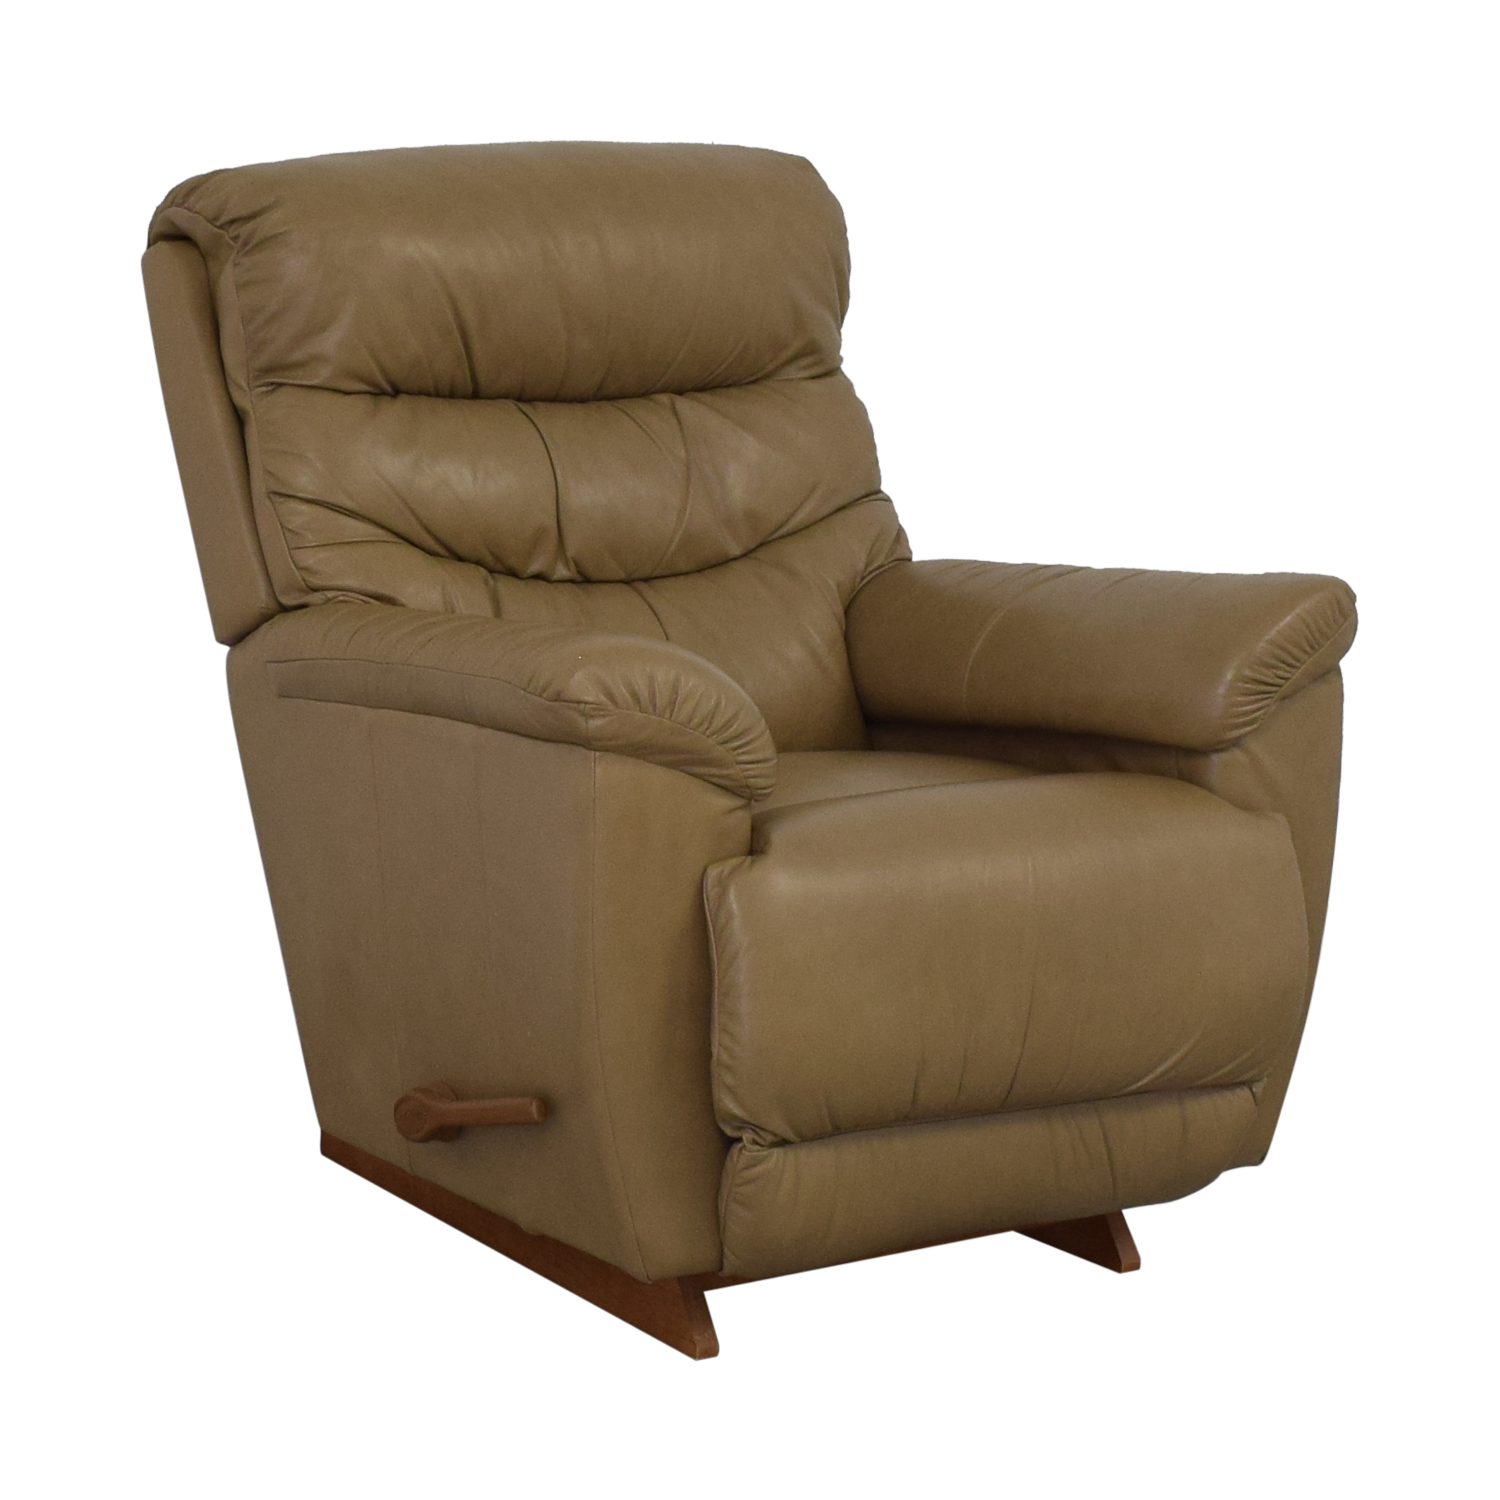 shop La-Z-Boy Leather Recliner La-Z-Boy Chairs